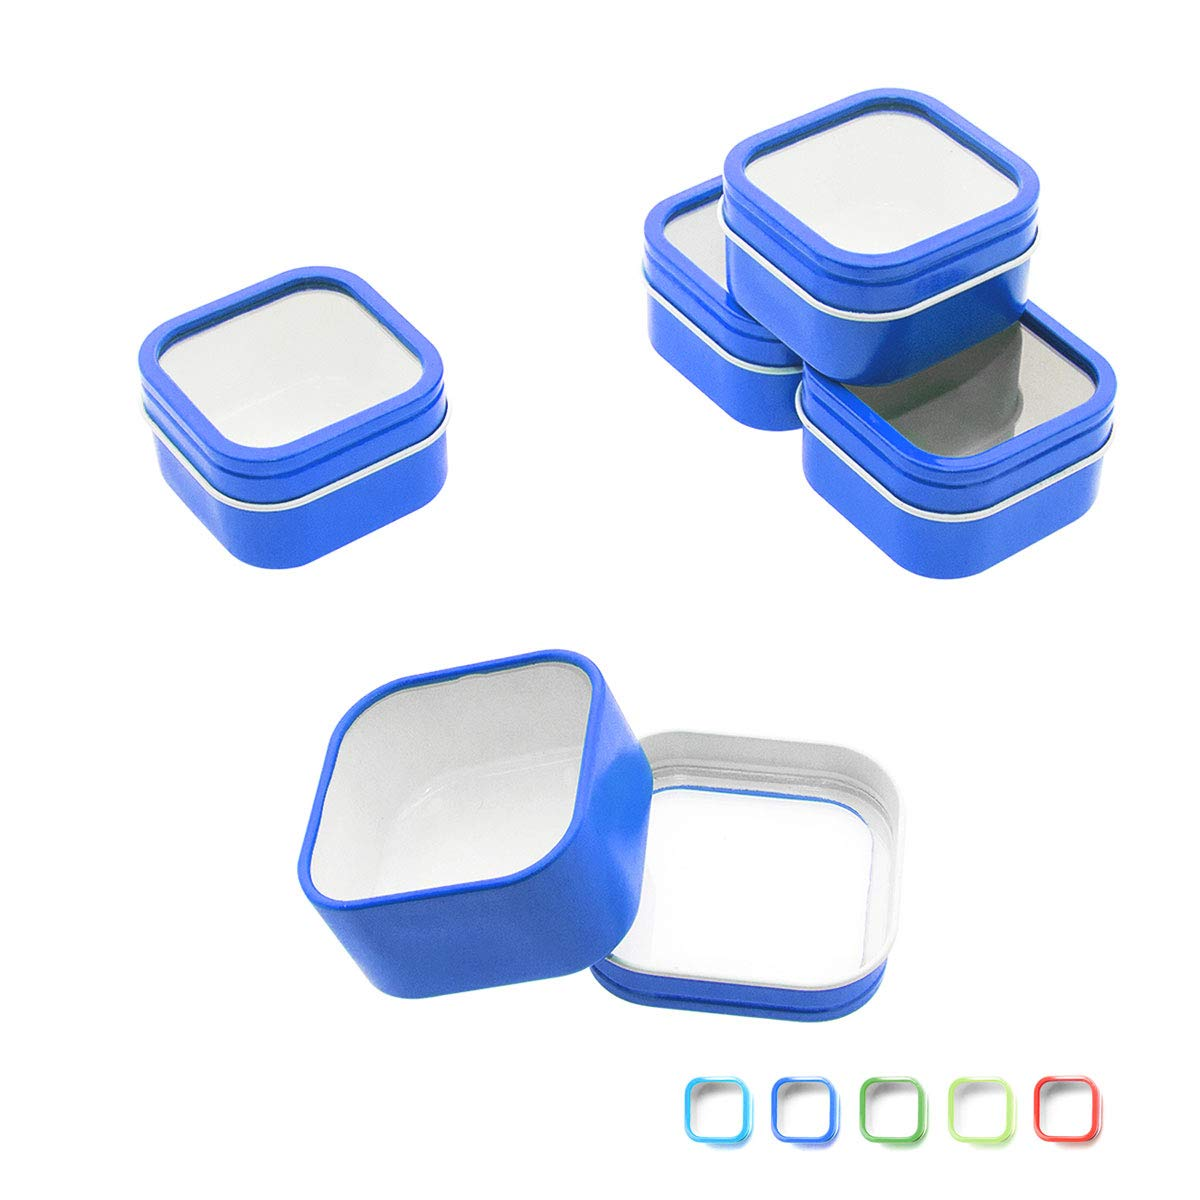 Mimi Pack 4 oz Square Cube Tin Cans with Clear Window Slip Cover Lid for Favors, Spices, Storage, Candies, Mints, Candles and Crafts (24, Blue)